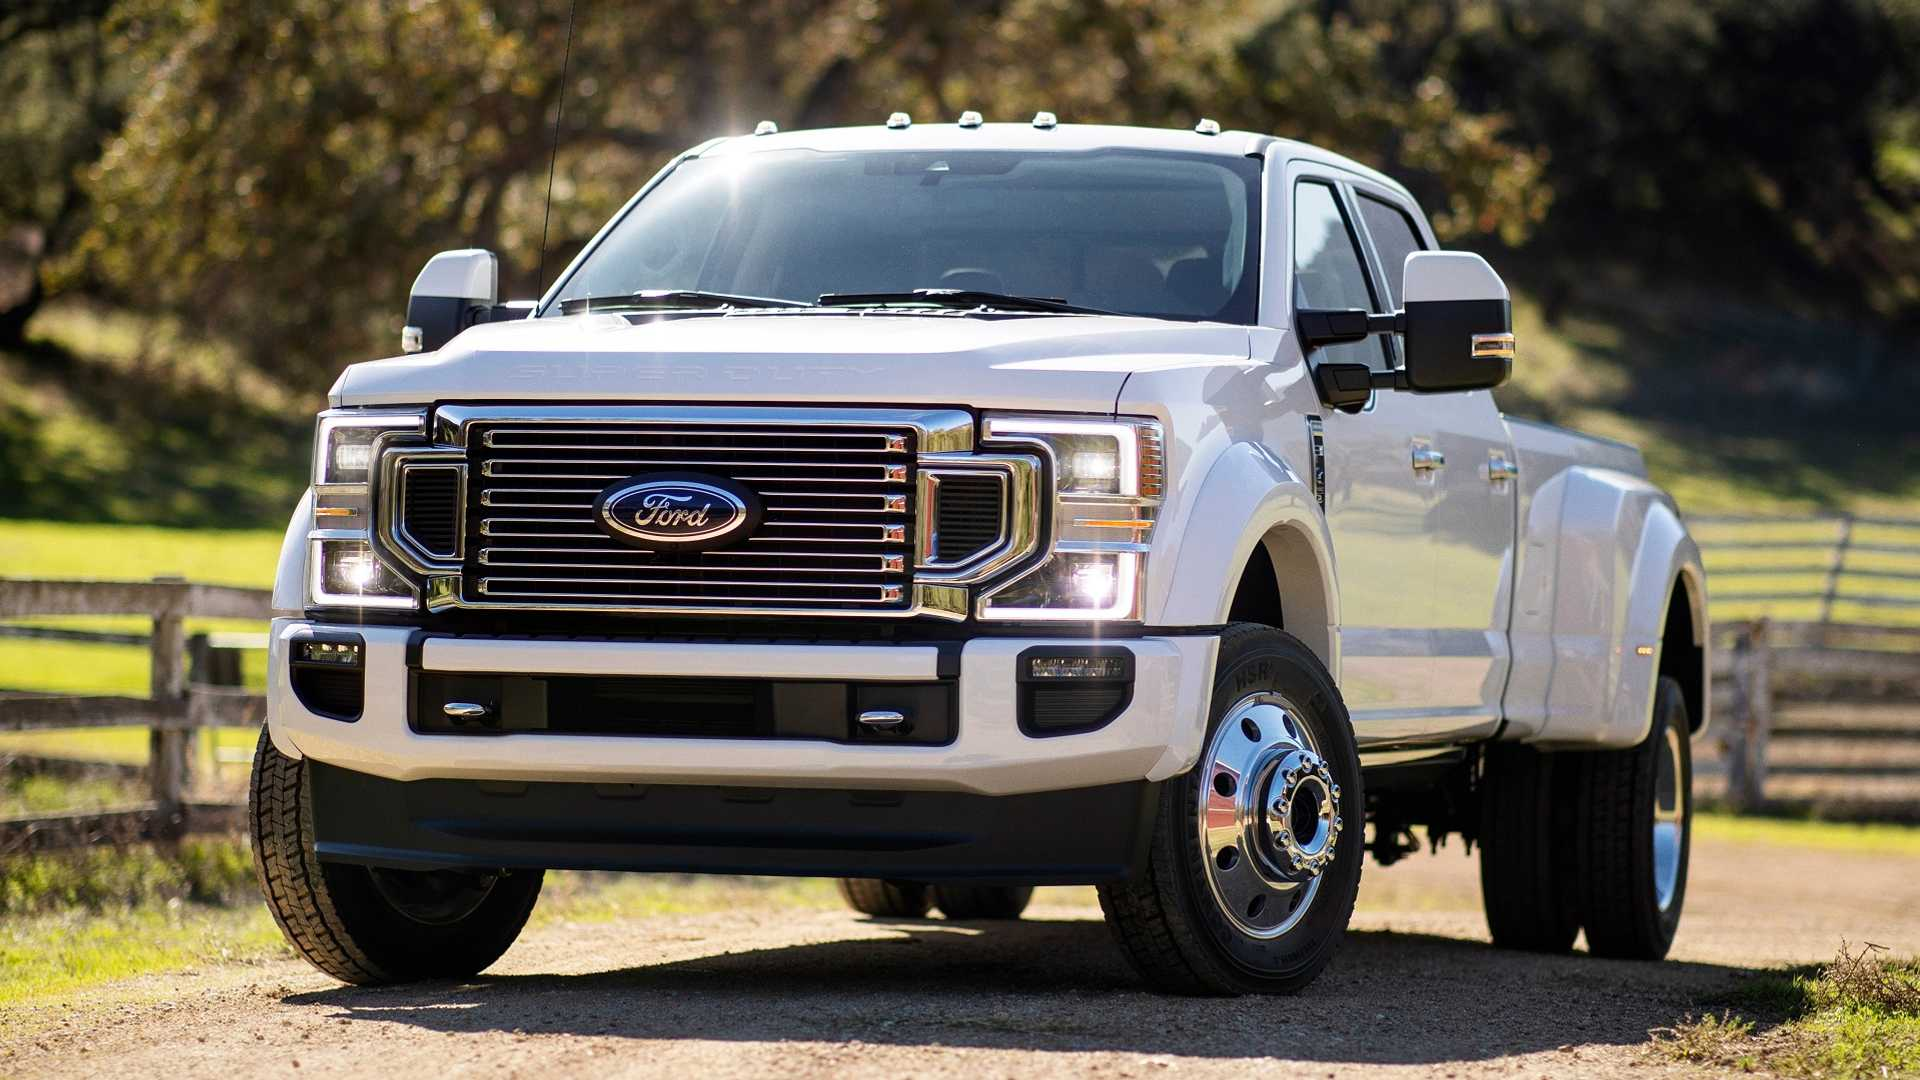 97 A 2020 Ford F250 Price And Review